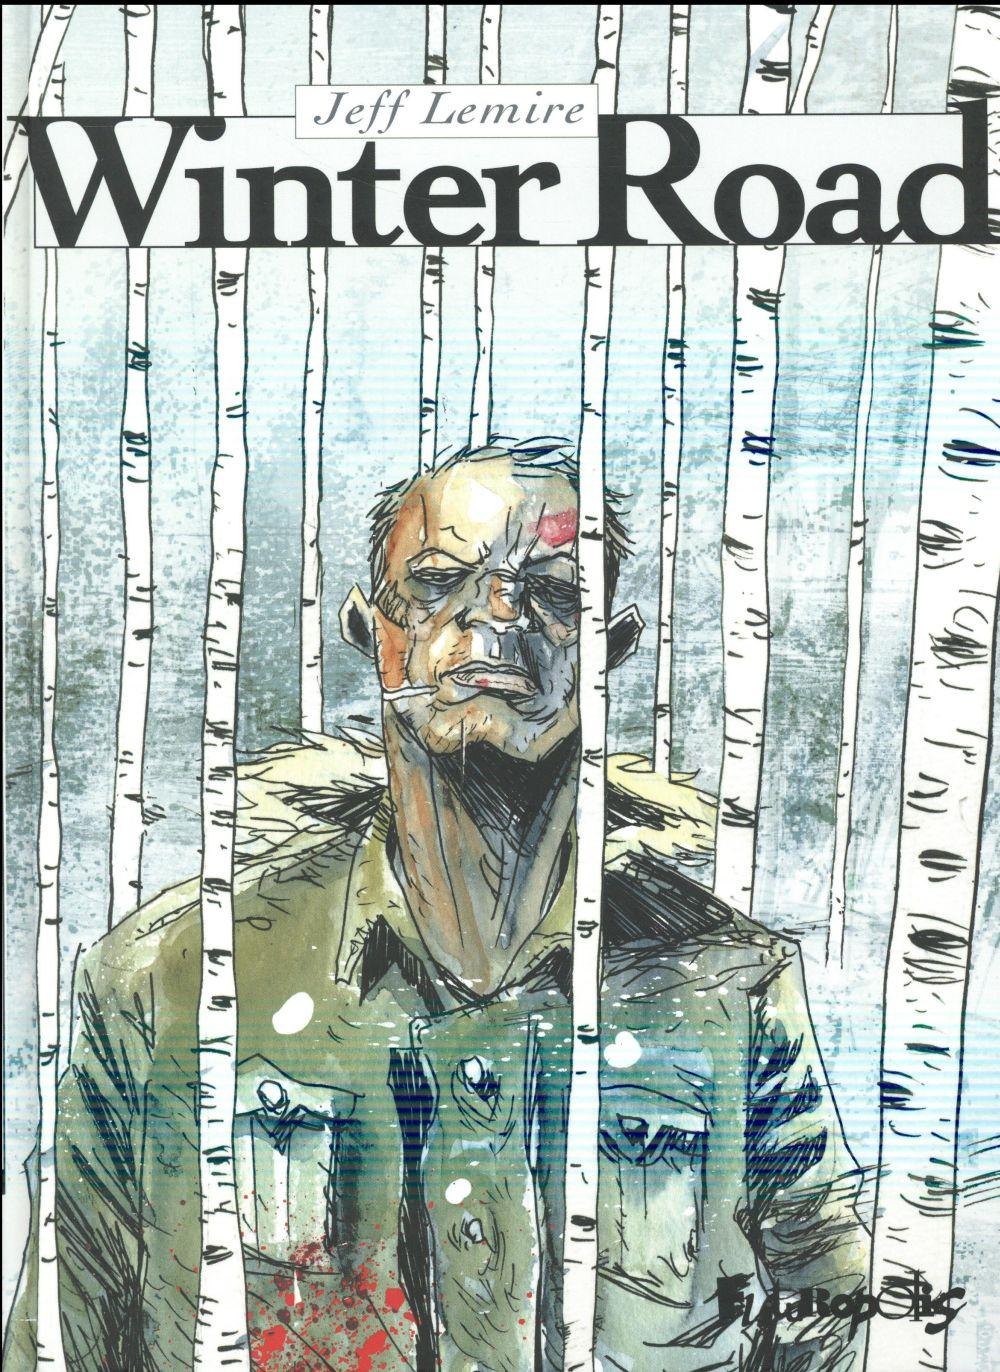 Winter road  - Jeff Lemire